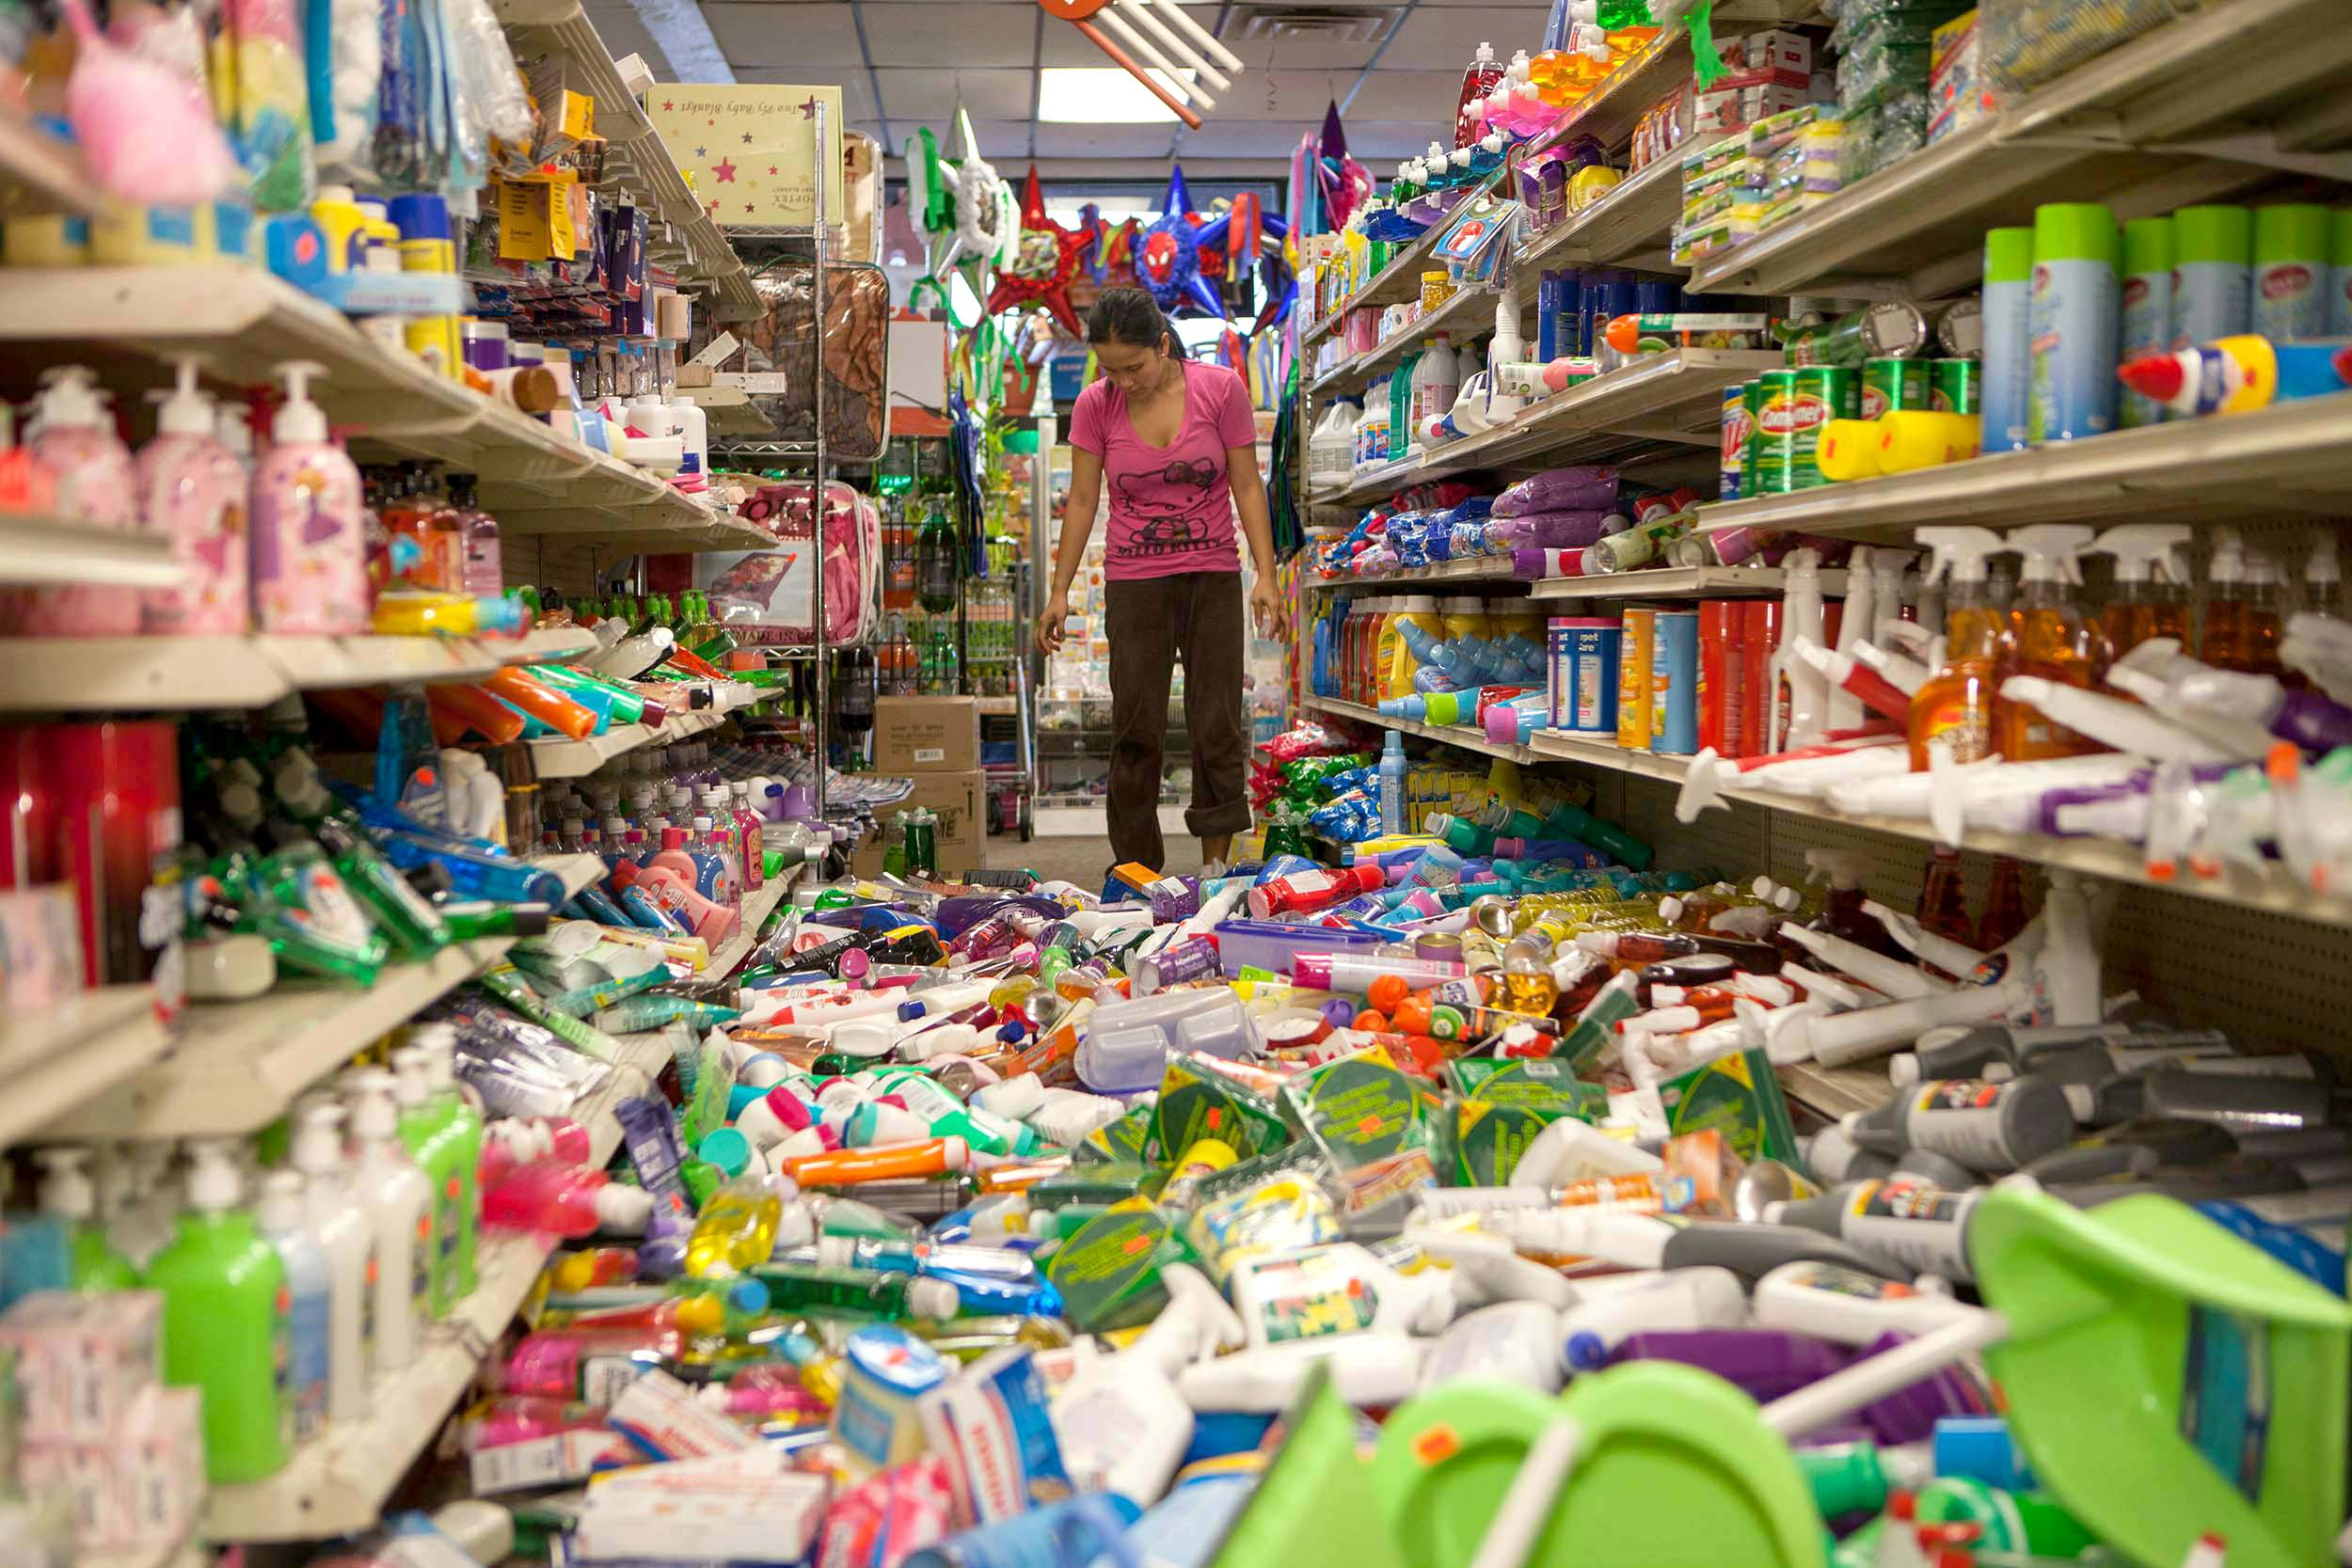 Nina Quidit cleans up the Dollar Plus and Party Supplies Store Sunday in American Canyon, California, after an earthquake. Quidit and her husband were woken up in the early morning hours by the store's alarm company and immediately drove in to begin clean up. The 6.0-magnitude quake caused six significant fires, including at four mobile homes, Napa Division Fire Chief Darren Drake said.